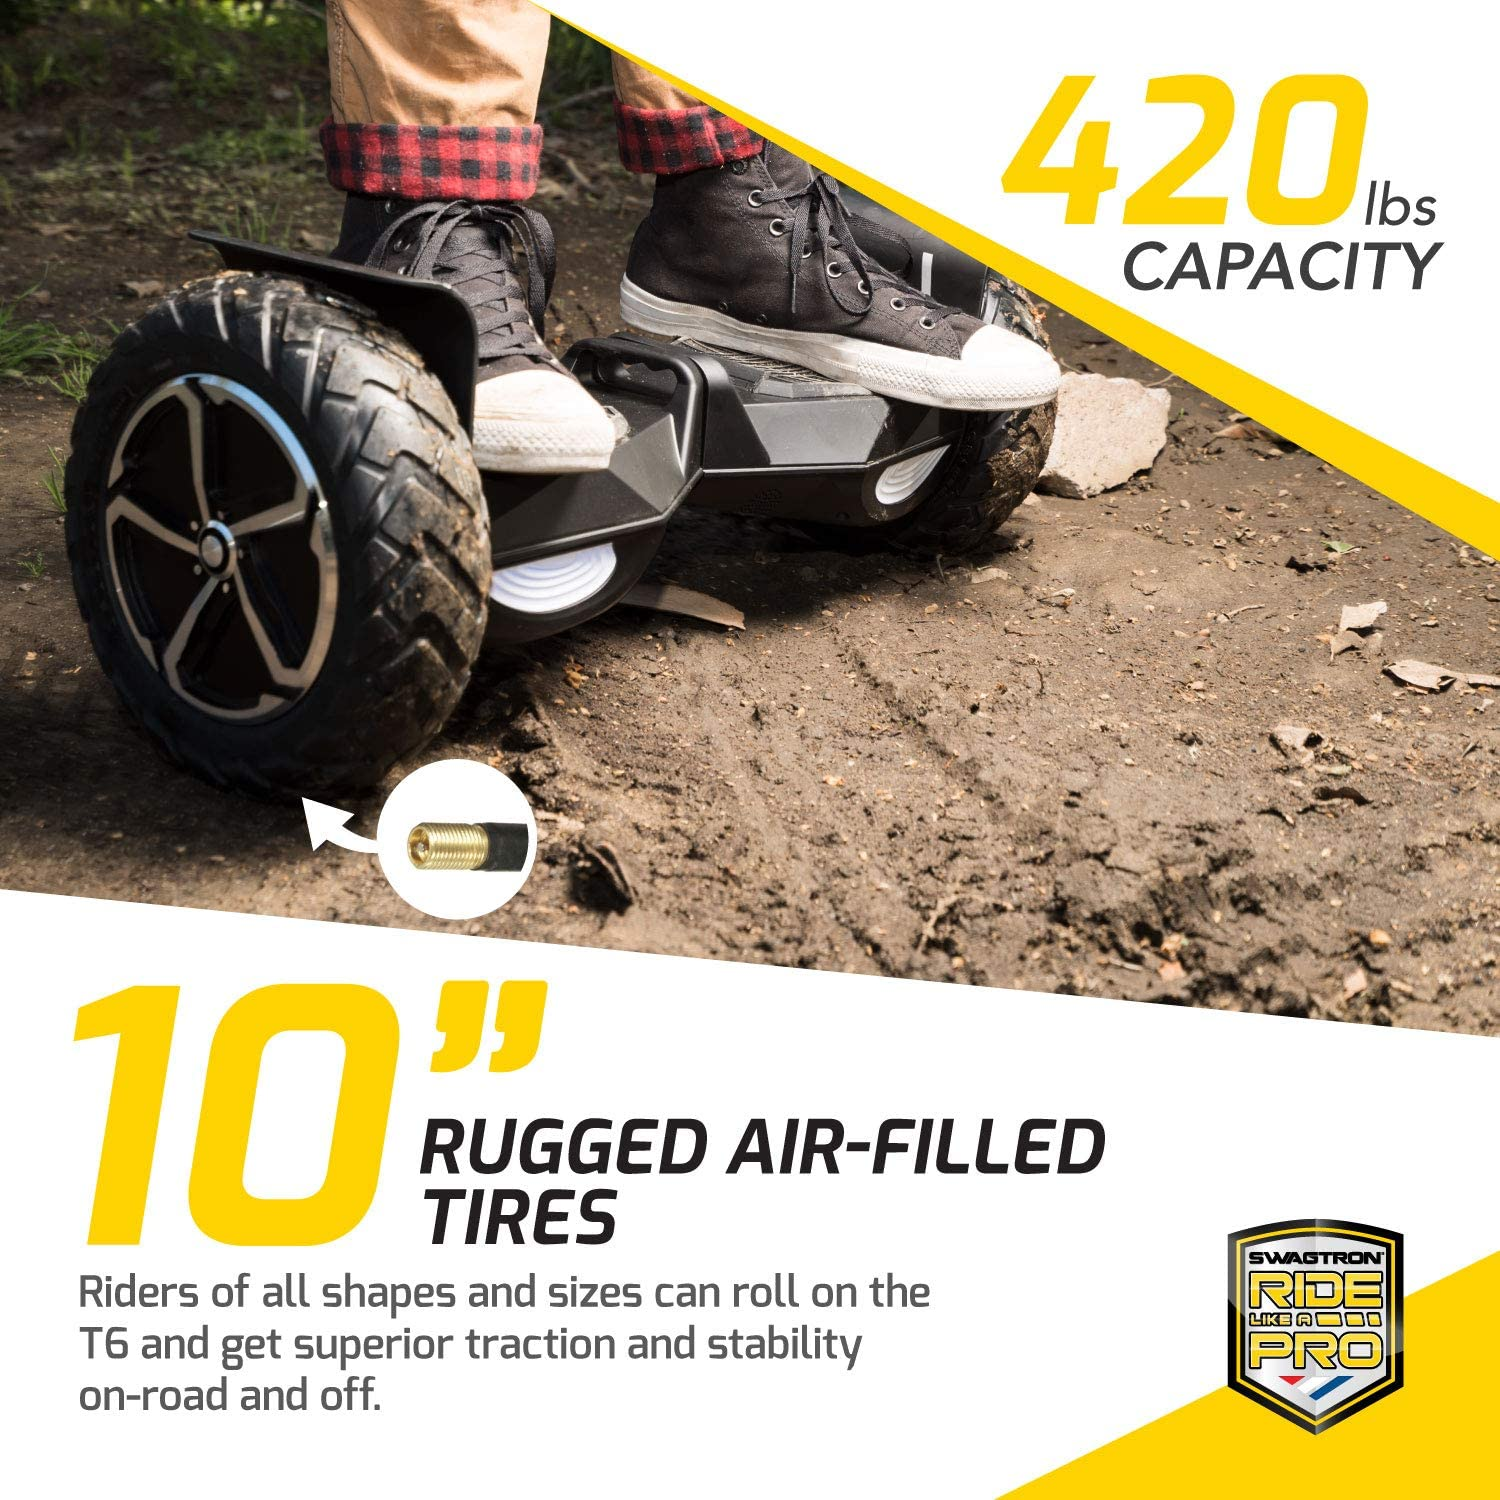 Swagtron Swagboard Outlaw T6 Off-Road Hoverboard - 3